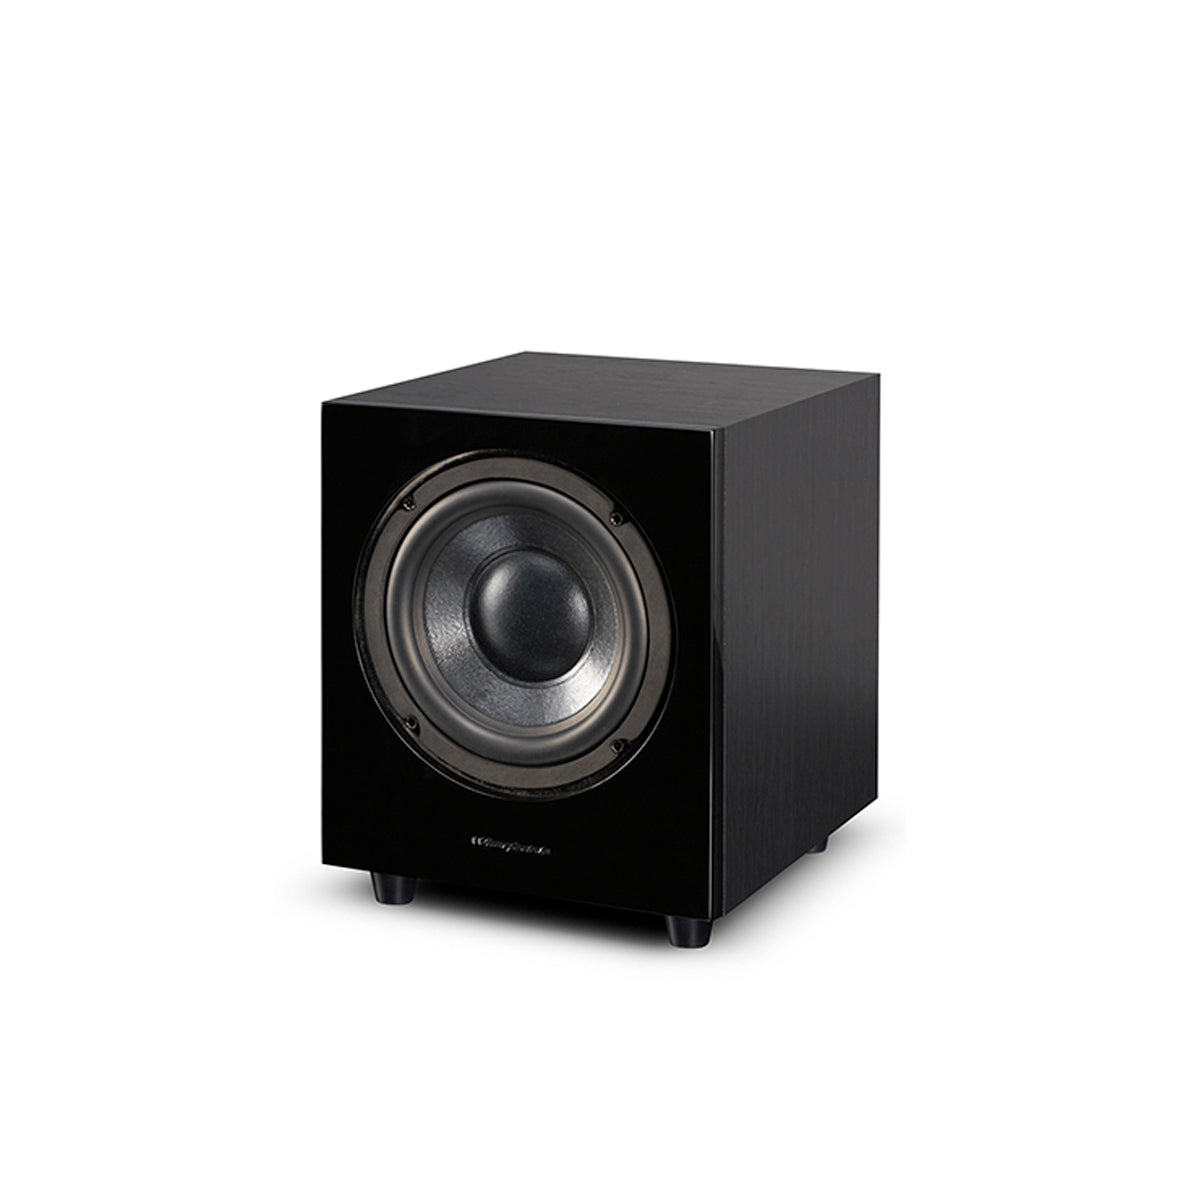 "Wharfedale WH-D8 8"" Dynamic Drive Powered Subwoofer"